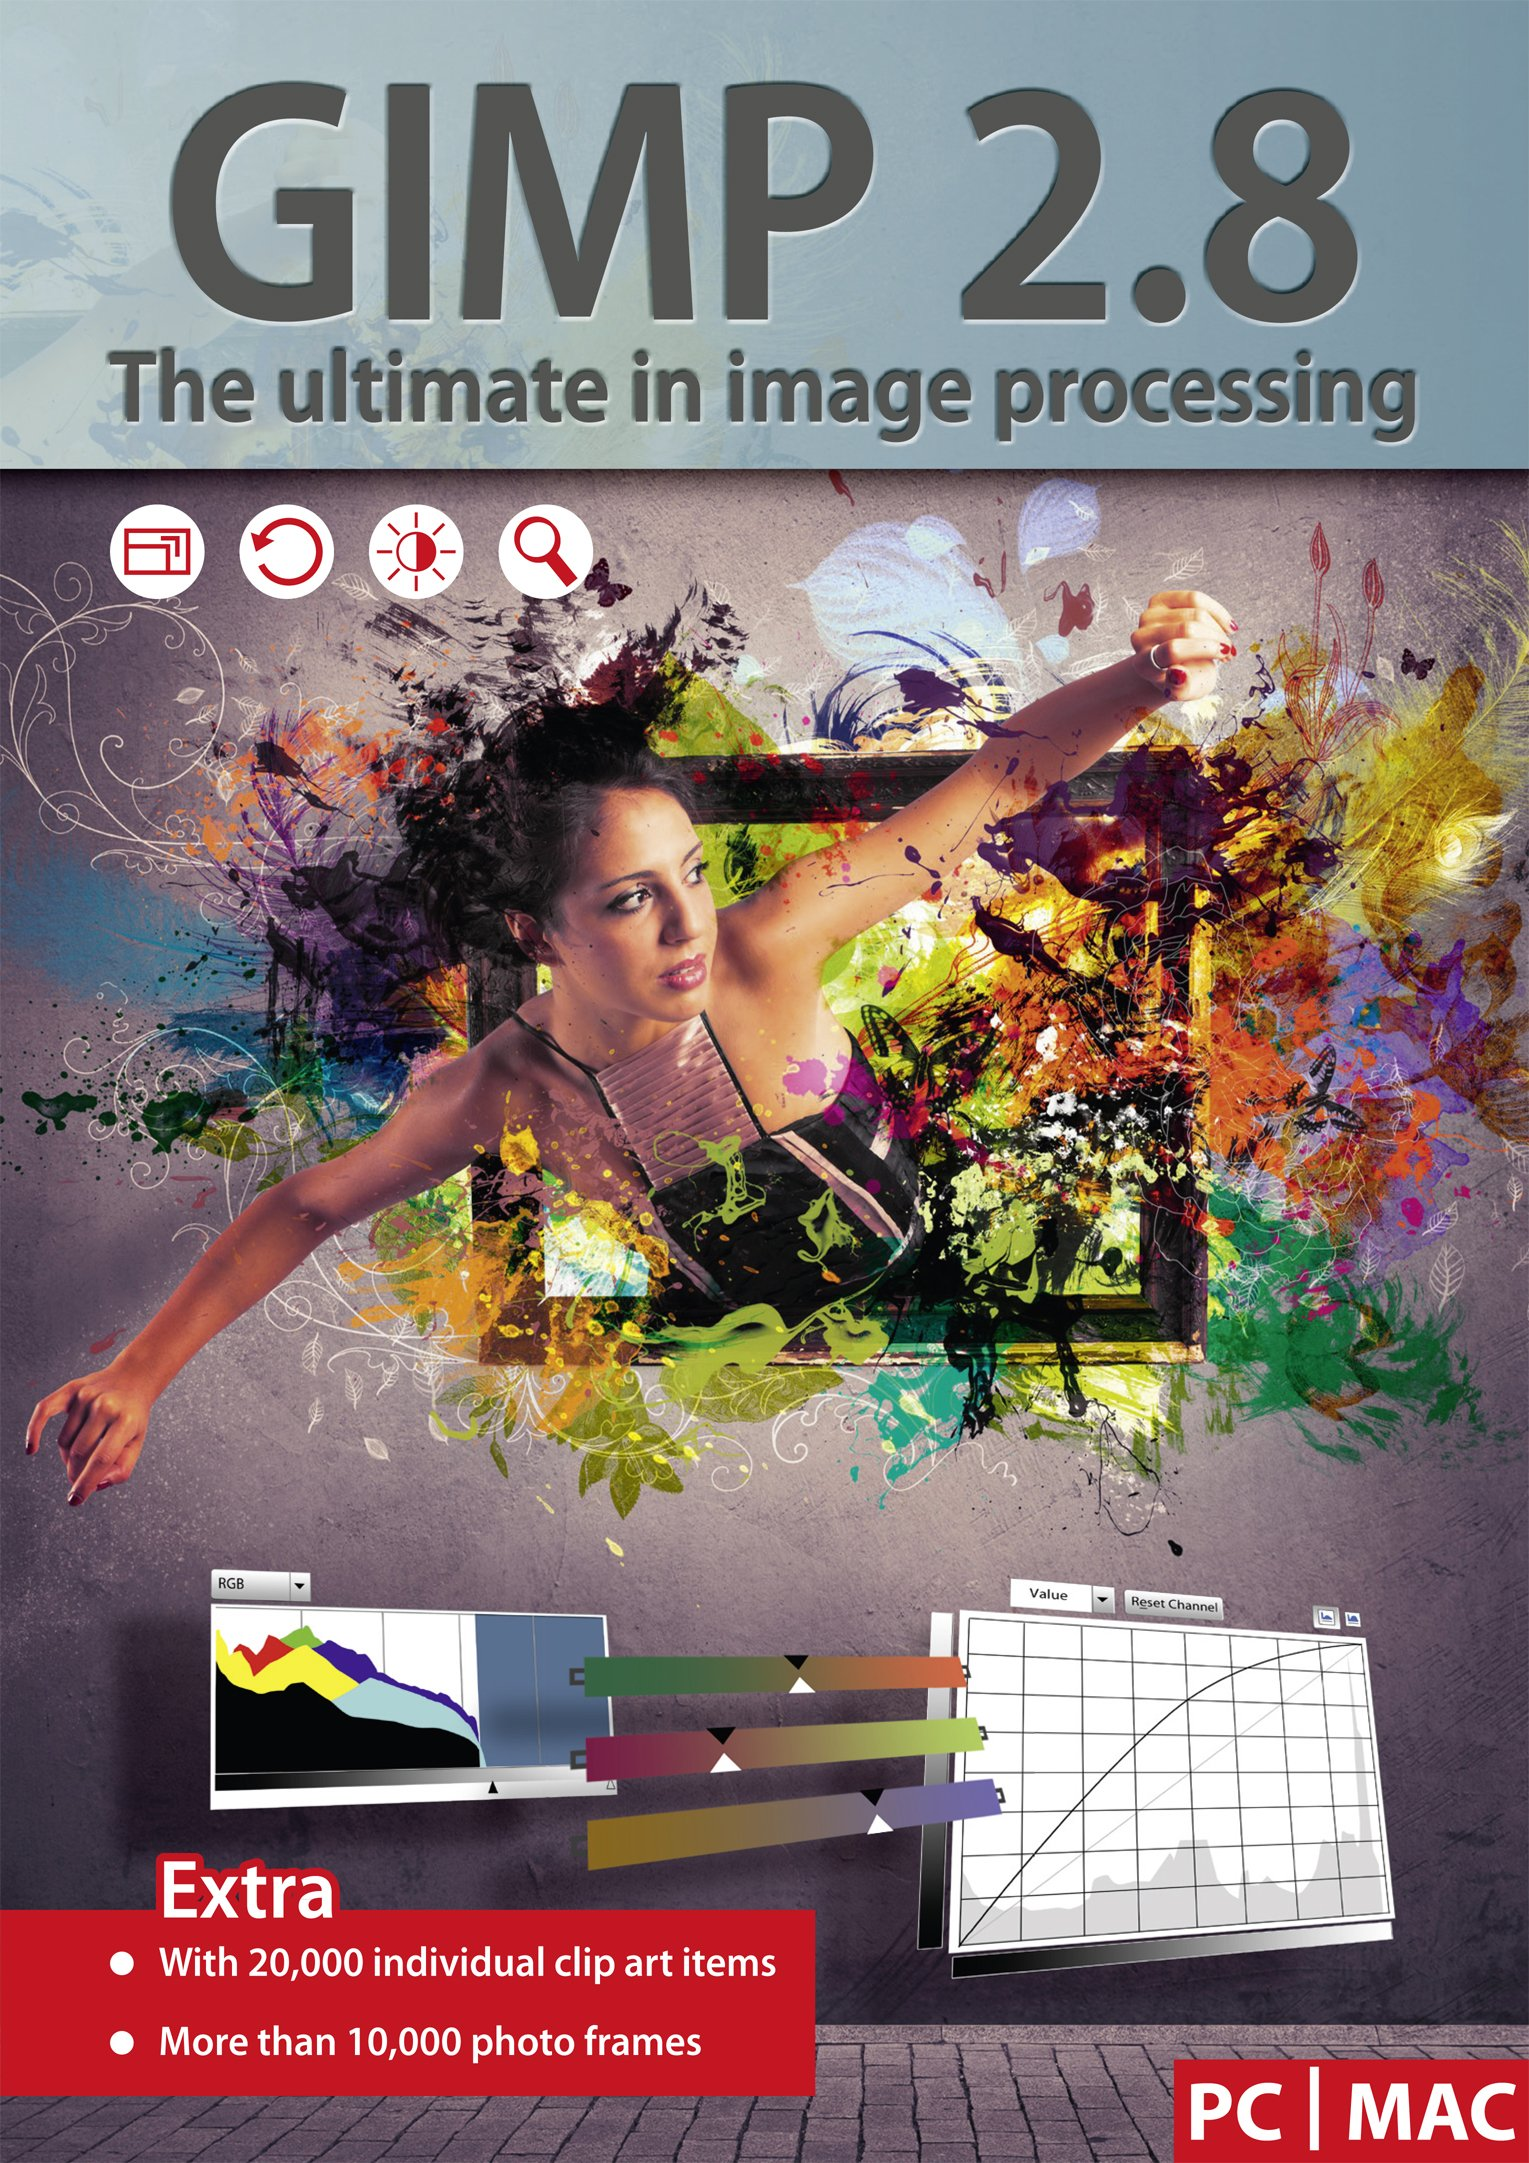 GIMP 2.8 - Ultimate Image Processing - Software Package includes 20,000 Clip Art Items - 10,000 Photo Frames - compatible with Adobe PhotoShop Elements / CS by Markt+Technik